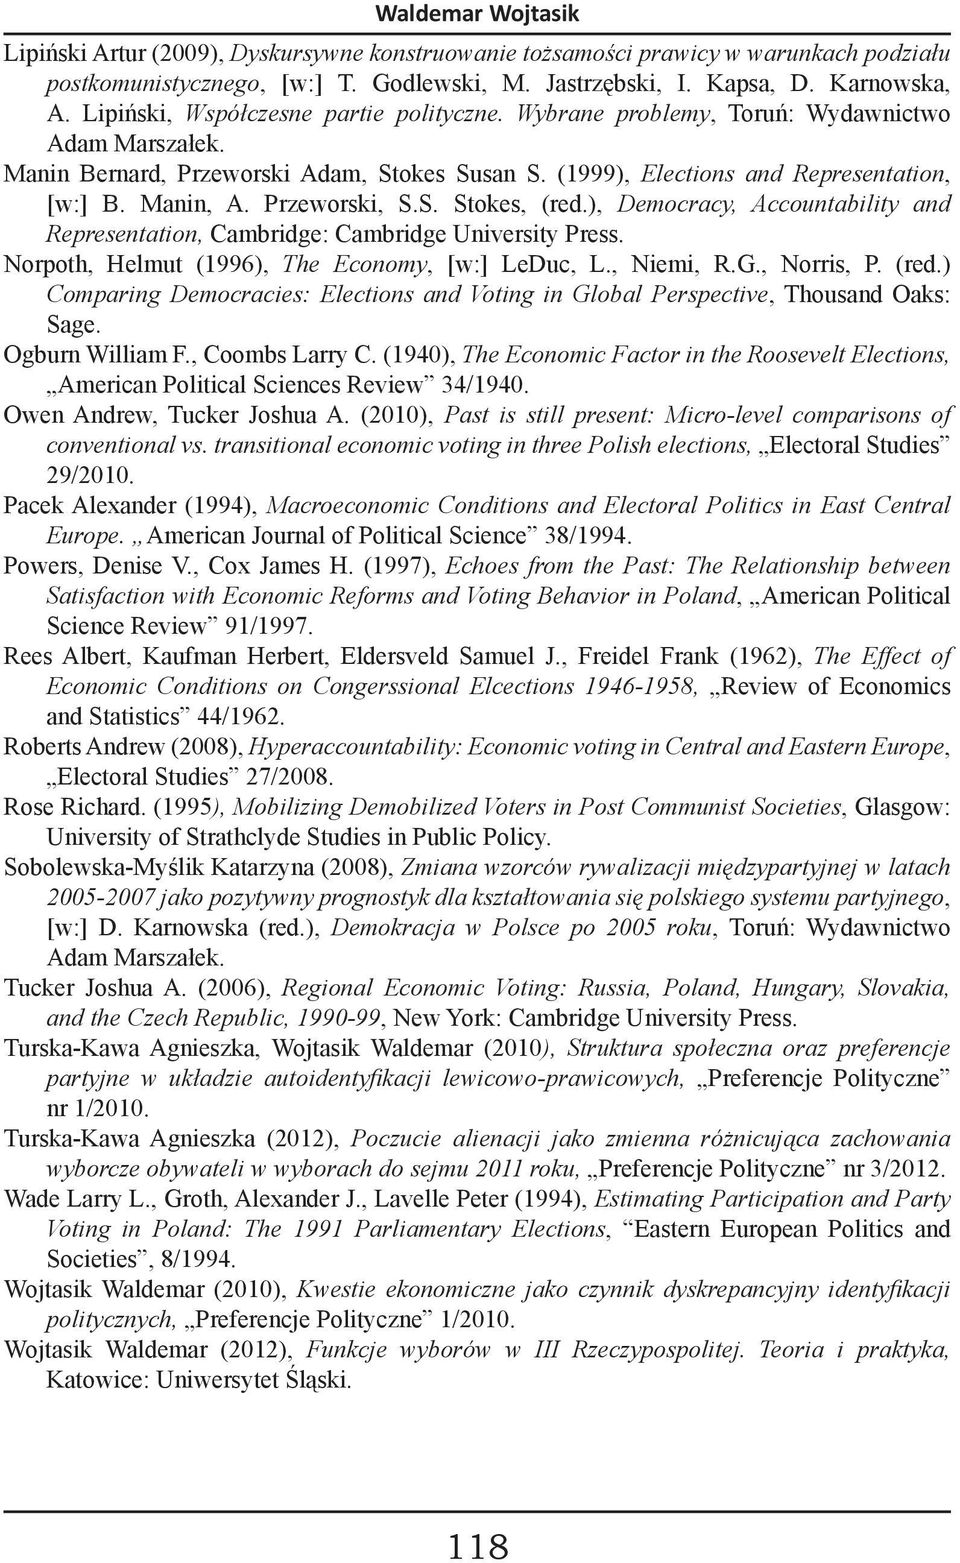 Przeworski, S.S. Stokes, (red.), Democracy, Accountability and Representation, Cambridge: Cambridge University Press. Norpoth, Helmut (1996), The Economy, [w:] LeDuc, L., Niemi, R.G., Norris, P. (red.) Comparing Democracies: Elections and Voting in Global Perspective, Thousand Oaks: Sage.